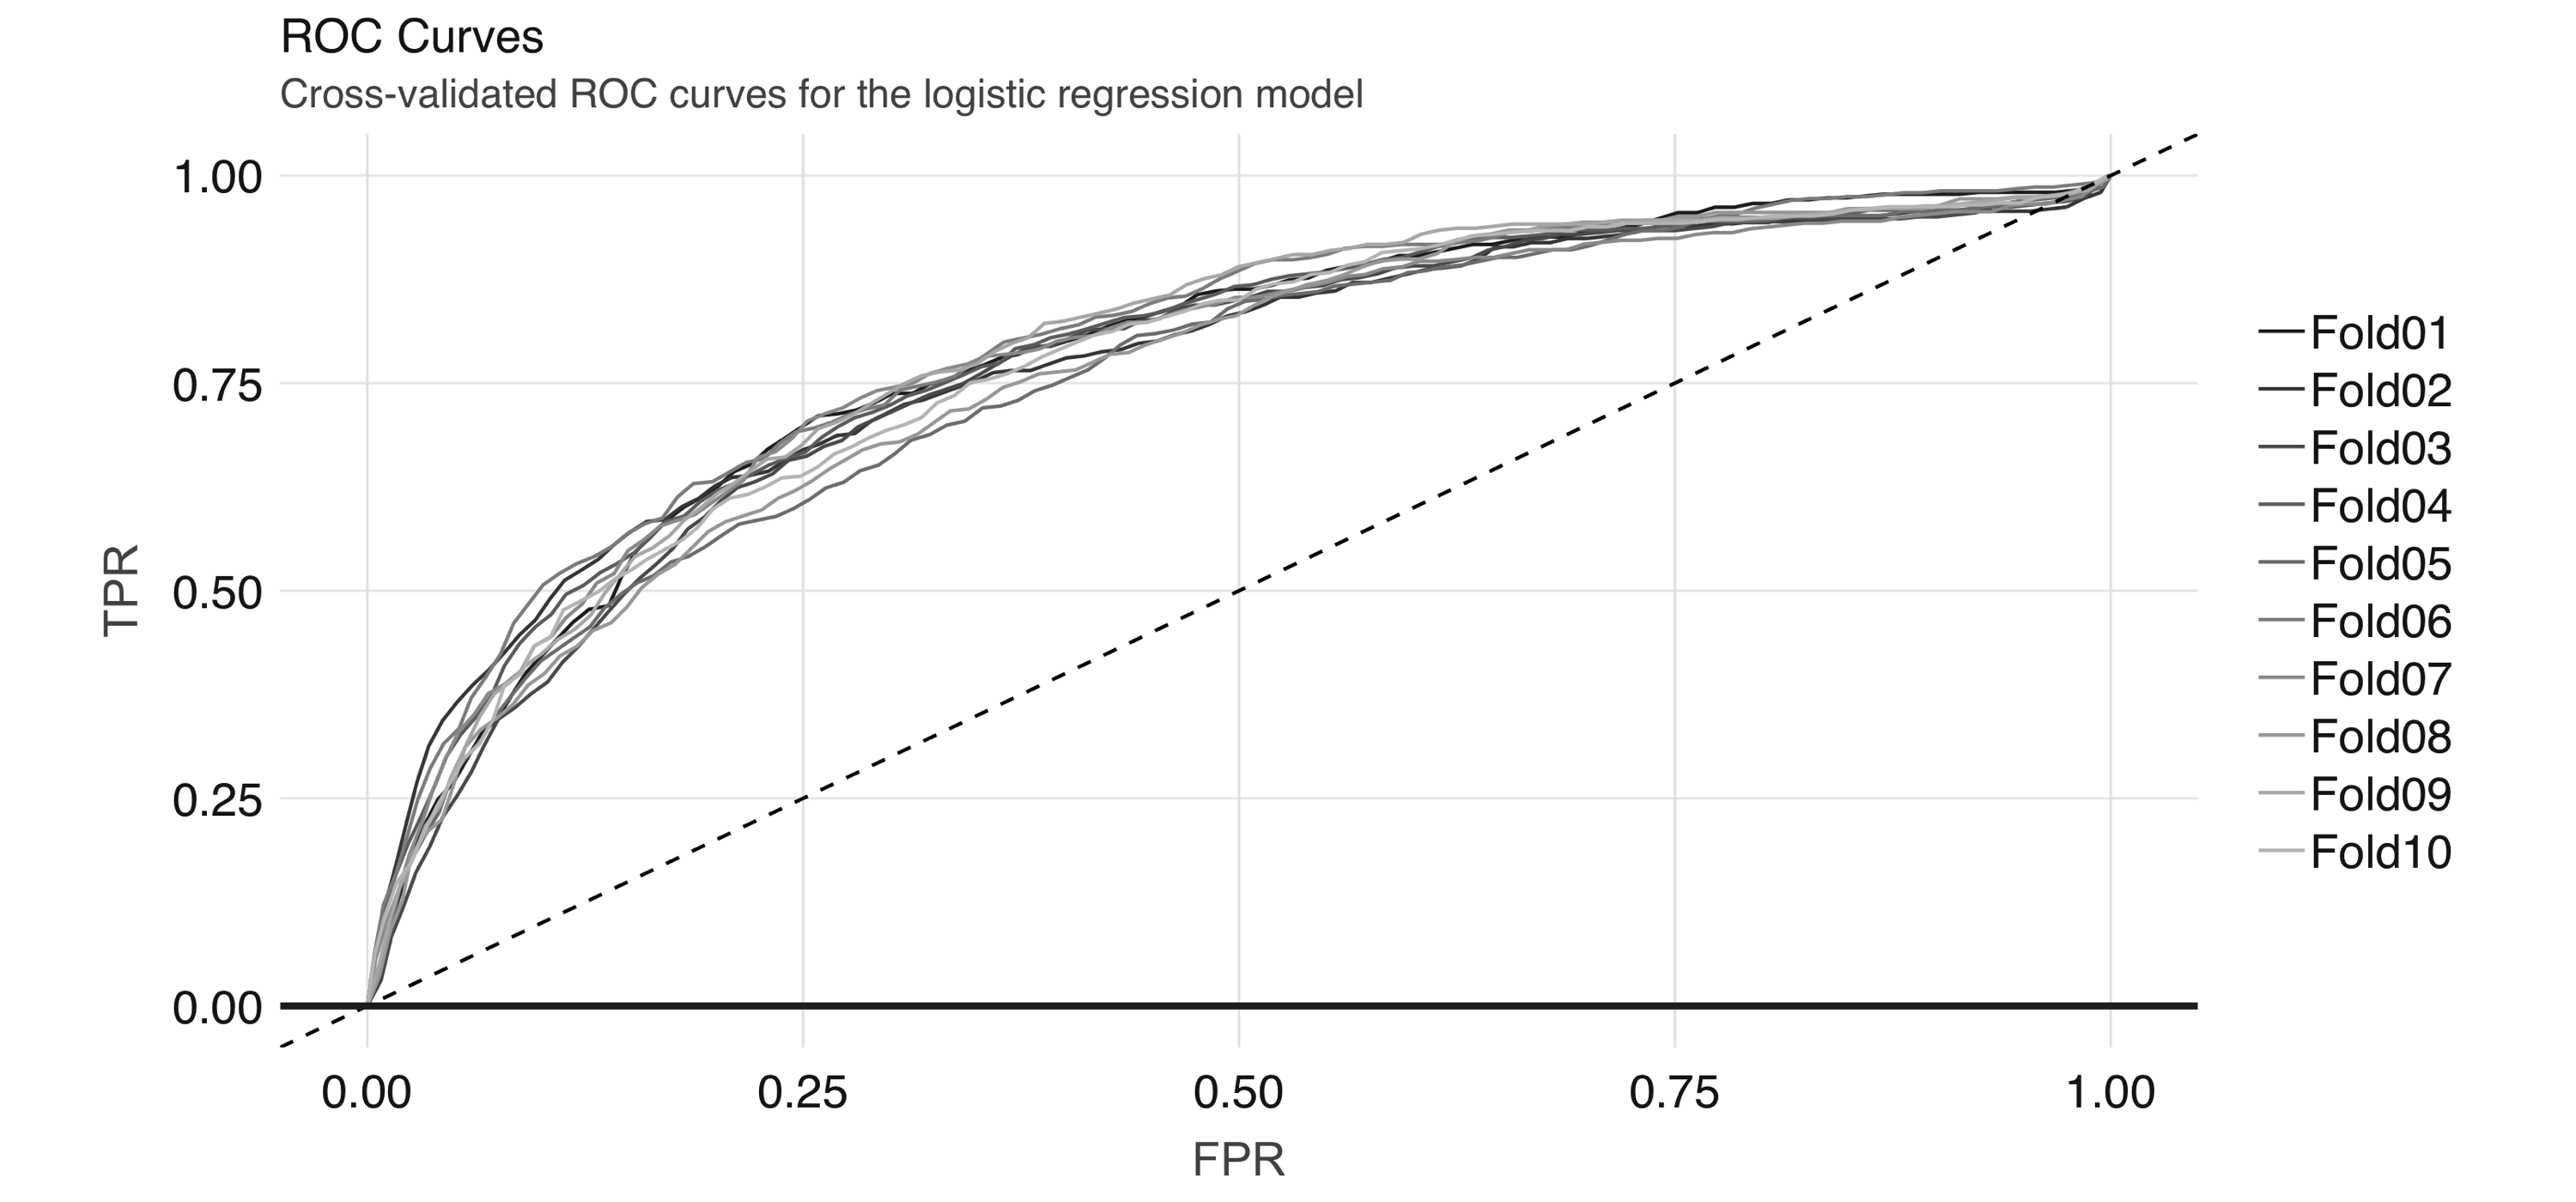 Cross-validated ROC curves for the logistic regression model